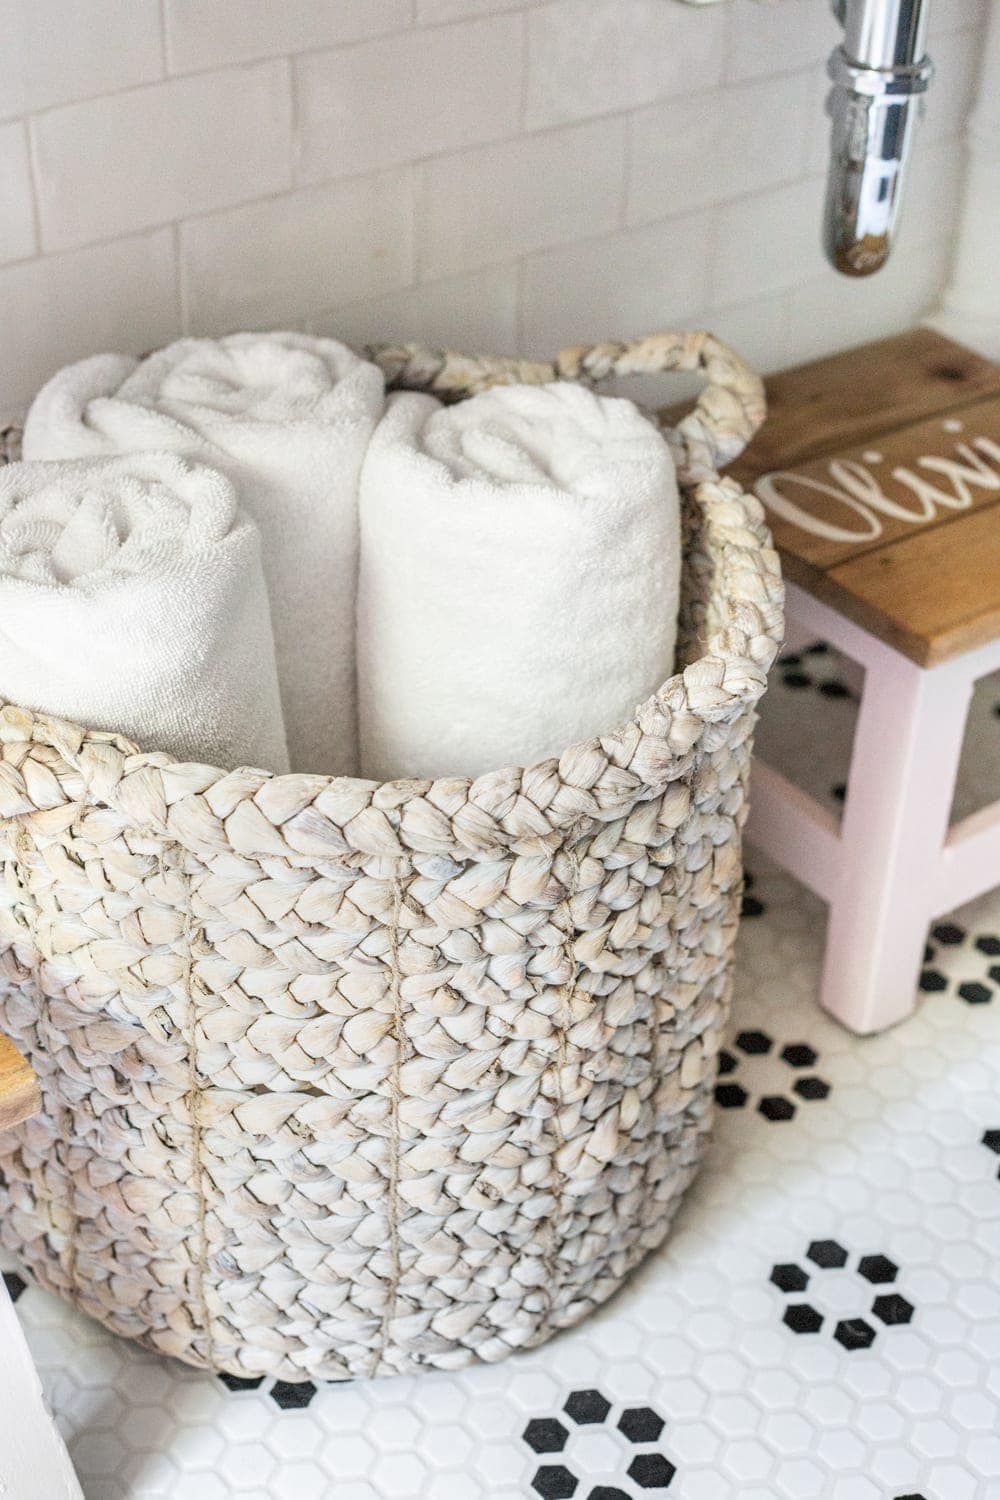 Girls' Bathroom Decor Details & Sources | basket of towels underneath an open vanity table